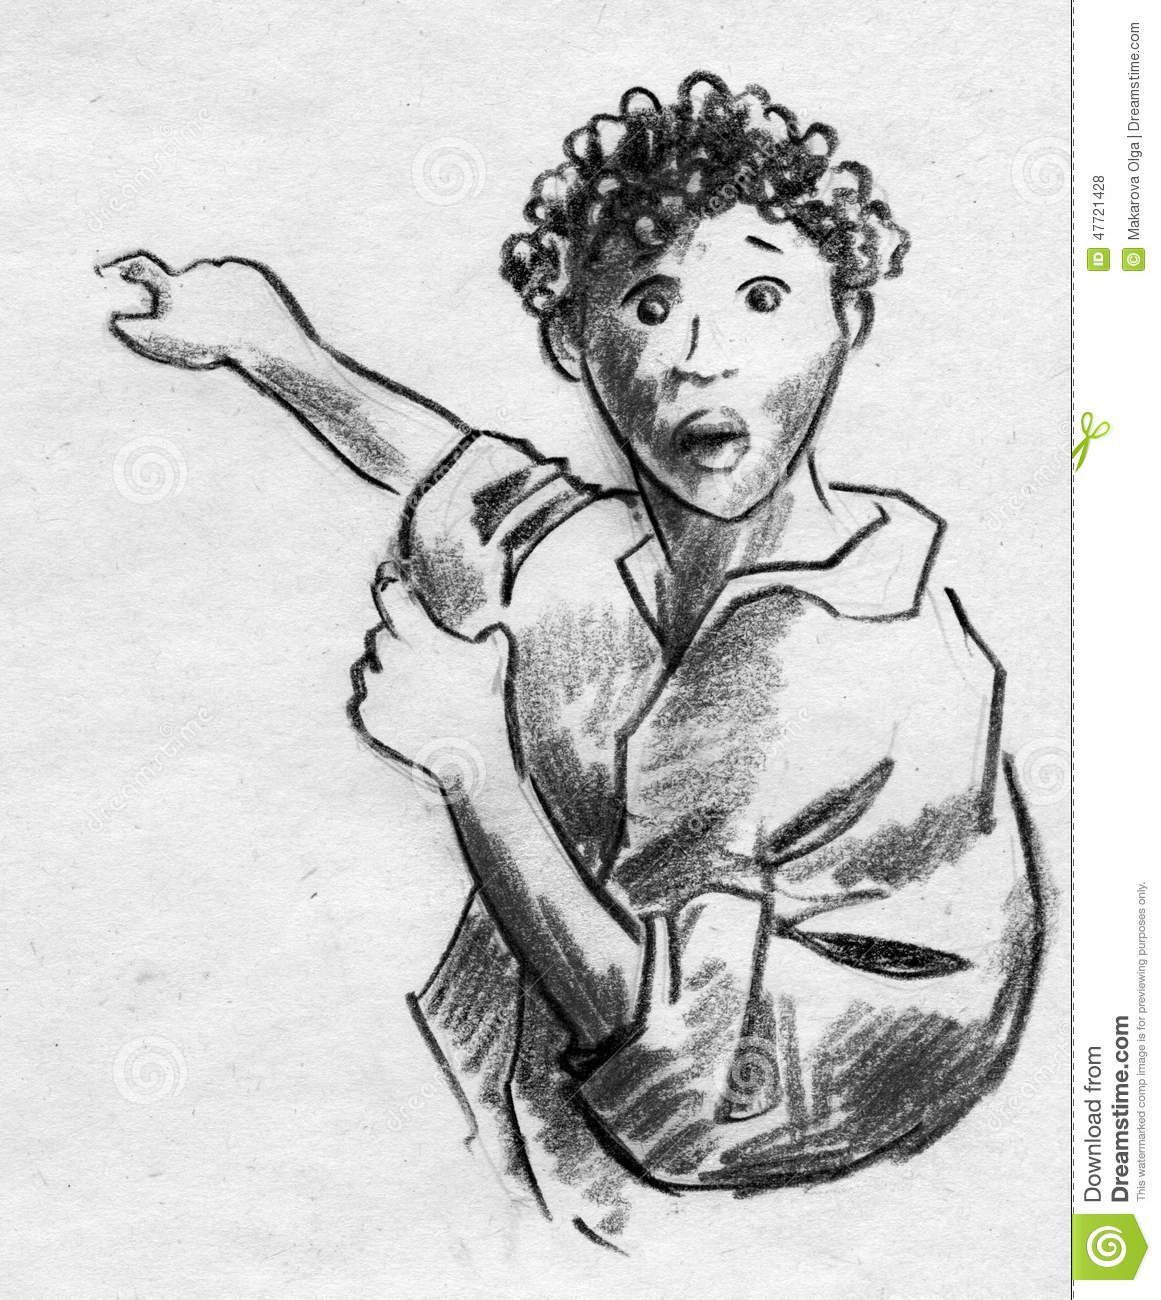 Hand drawn pencil sketch of a curly haired man crying in surprise and pointing at smth